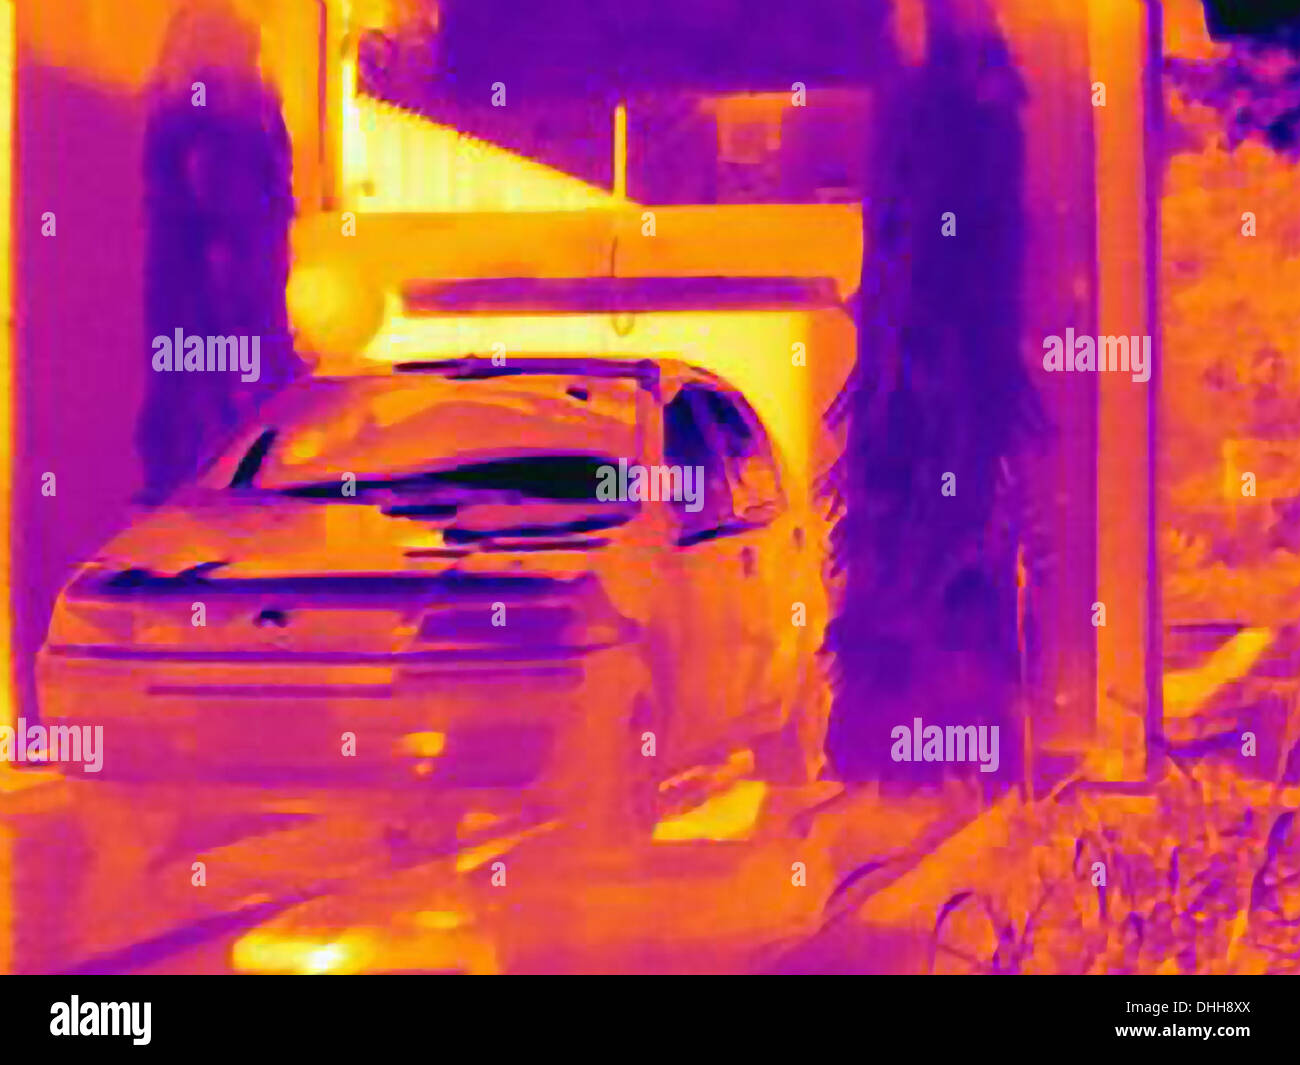 Thermal image of automobile in car wash - Stock Image